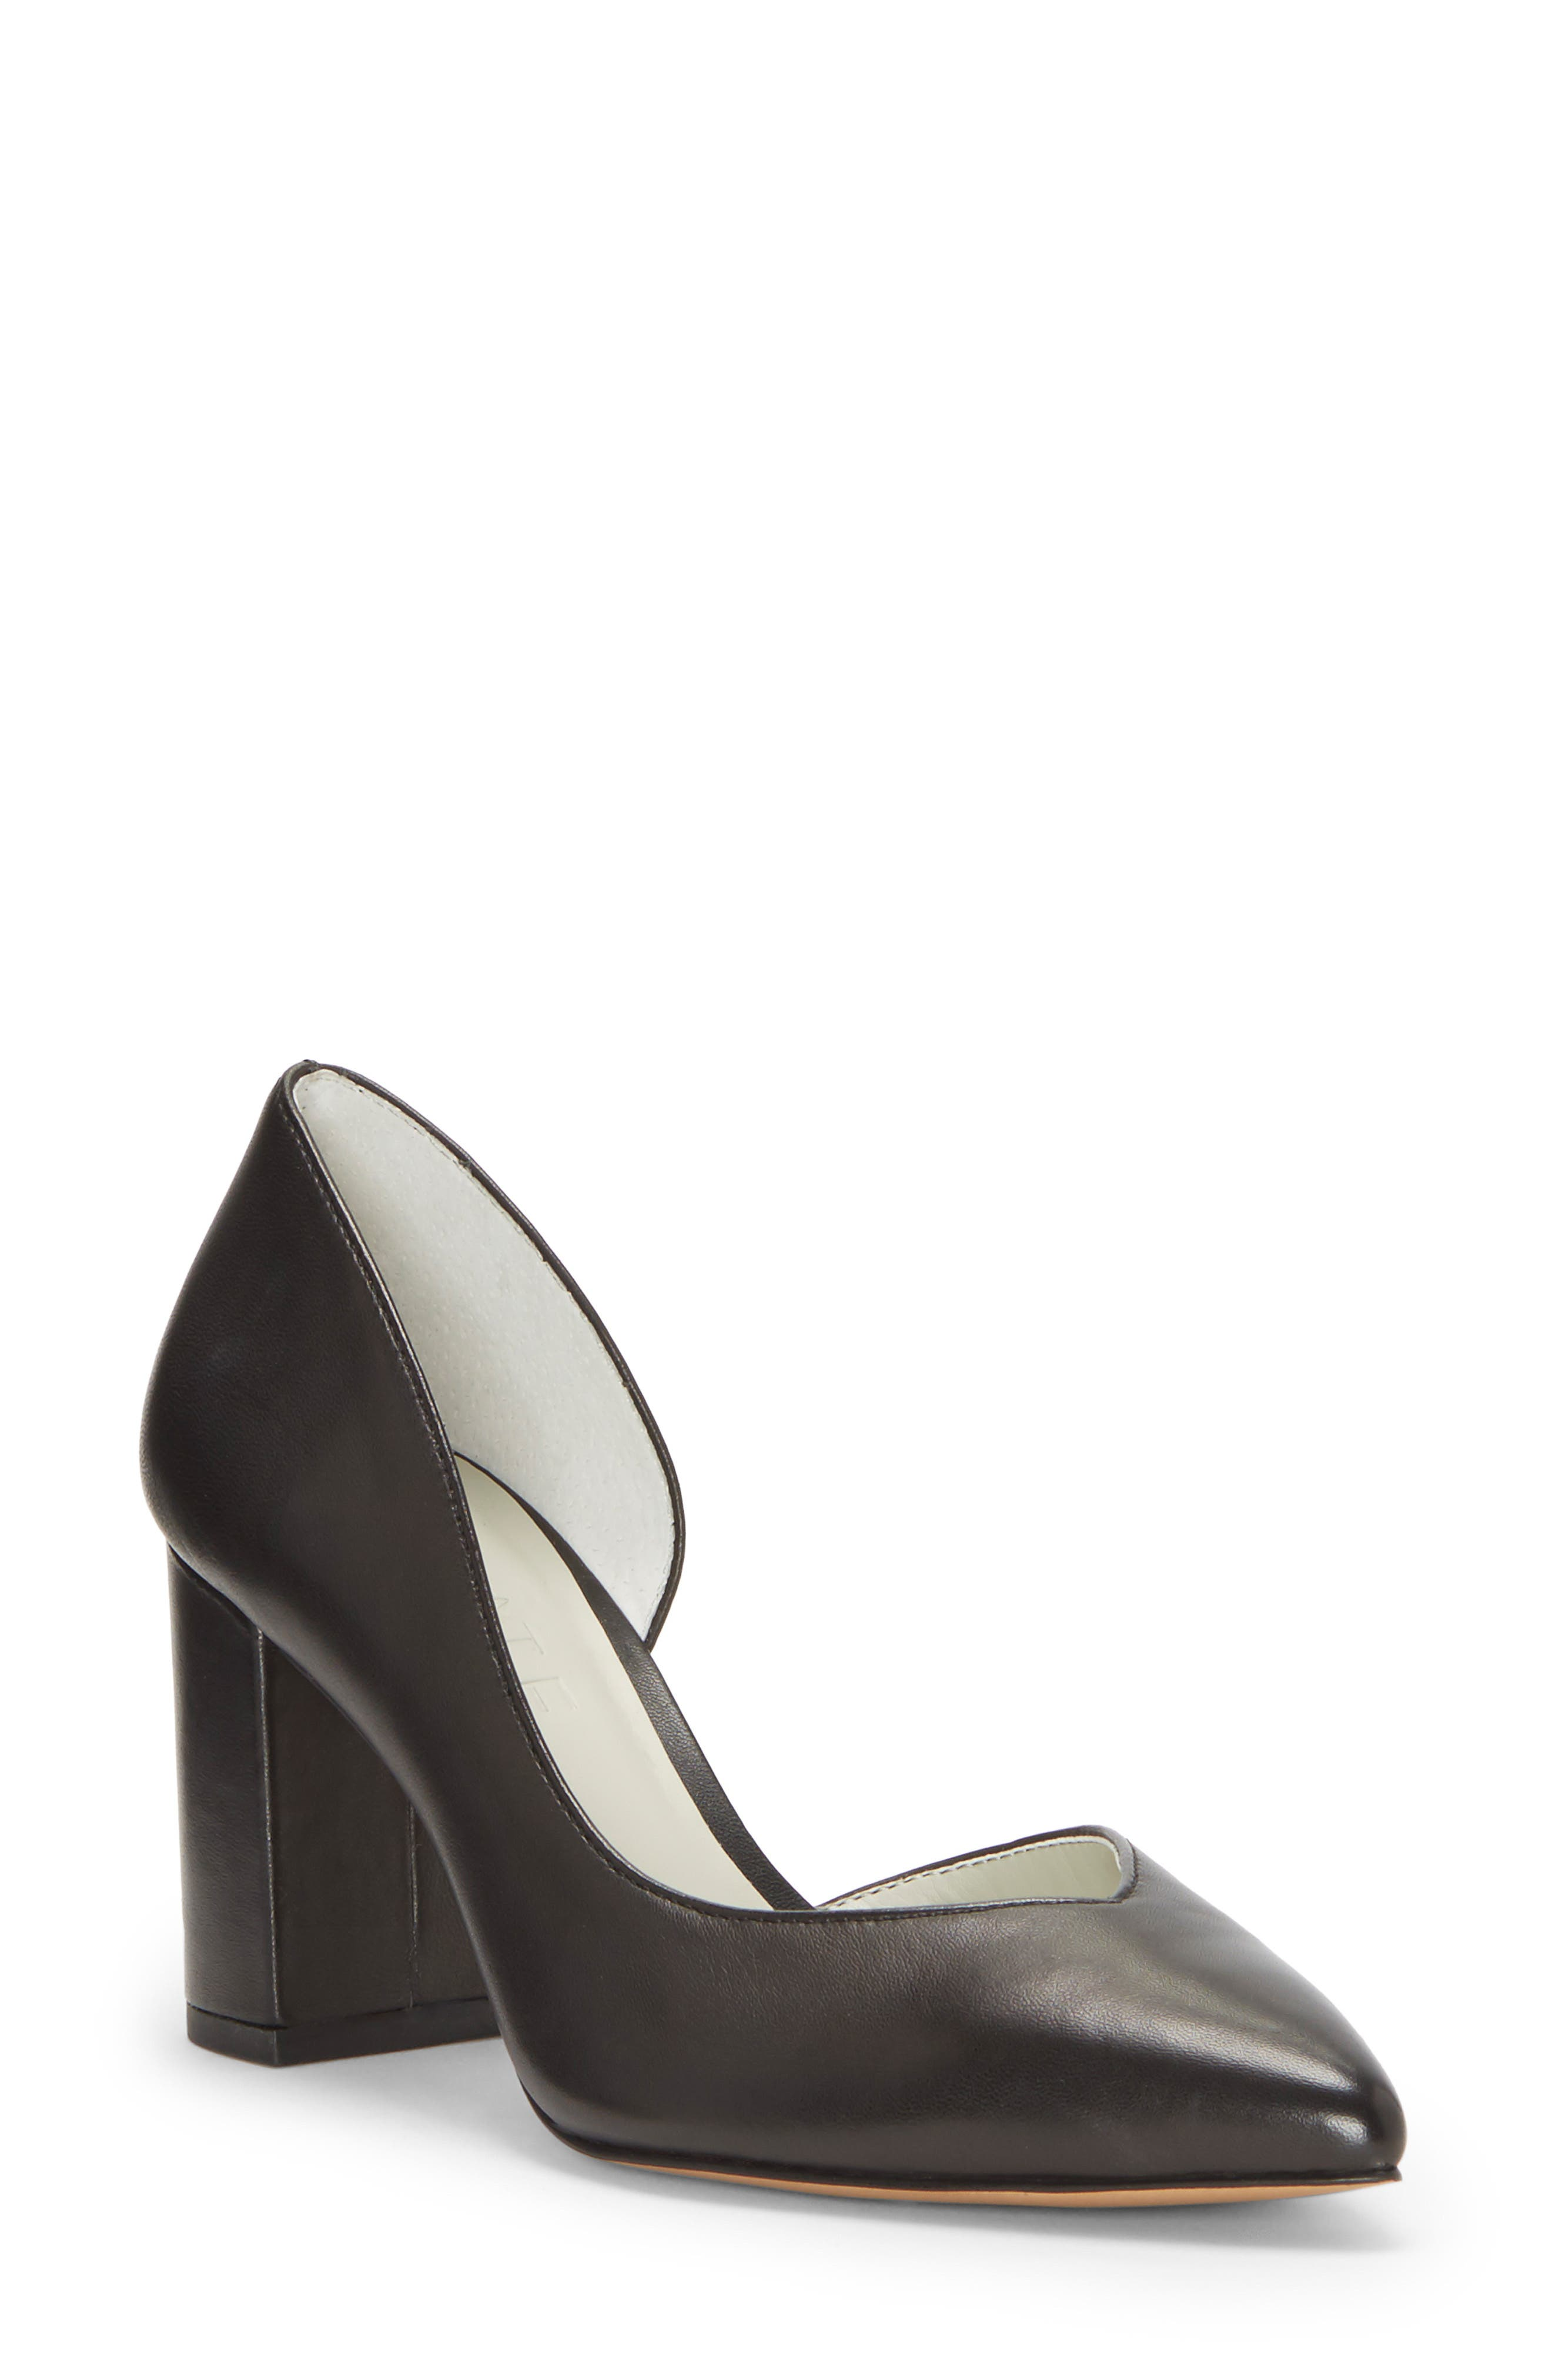 Sisteen Half d'Orsay Pump,                             Main thumbnail 1, color,                             BLACK LEATHER